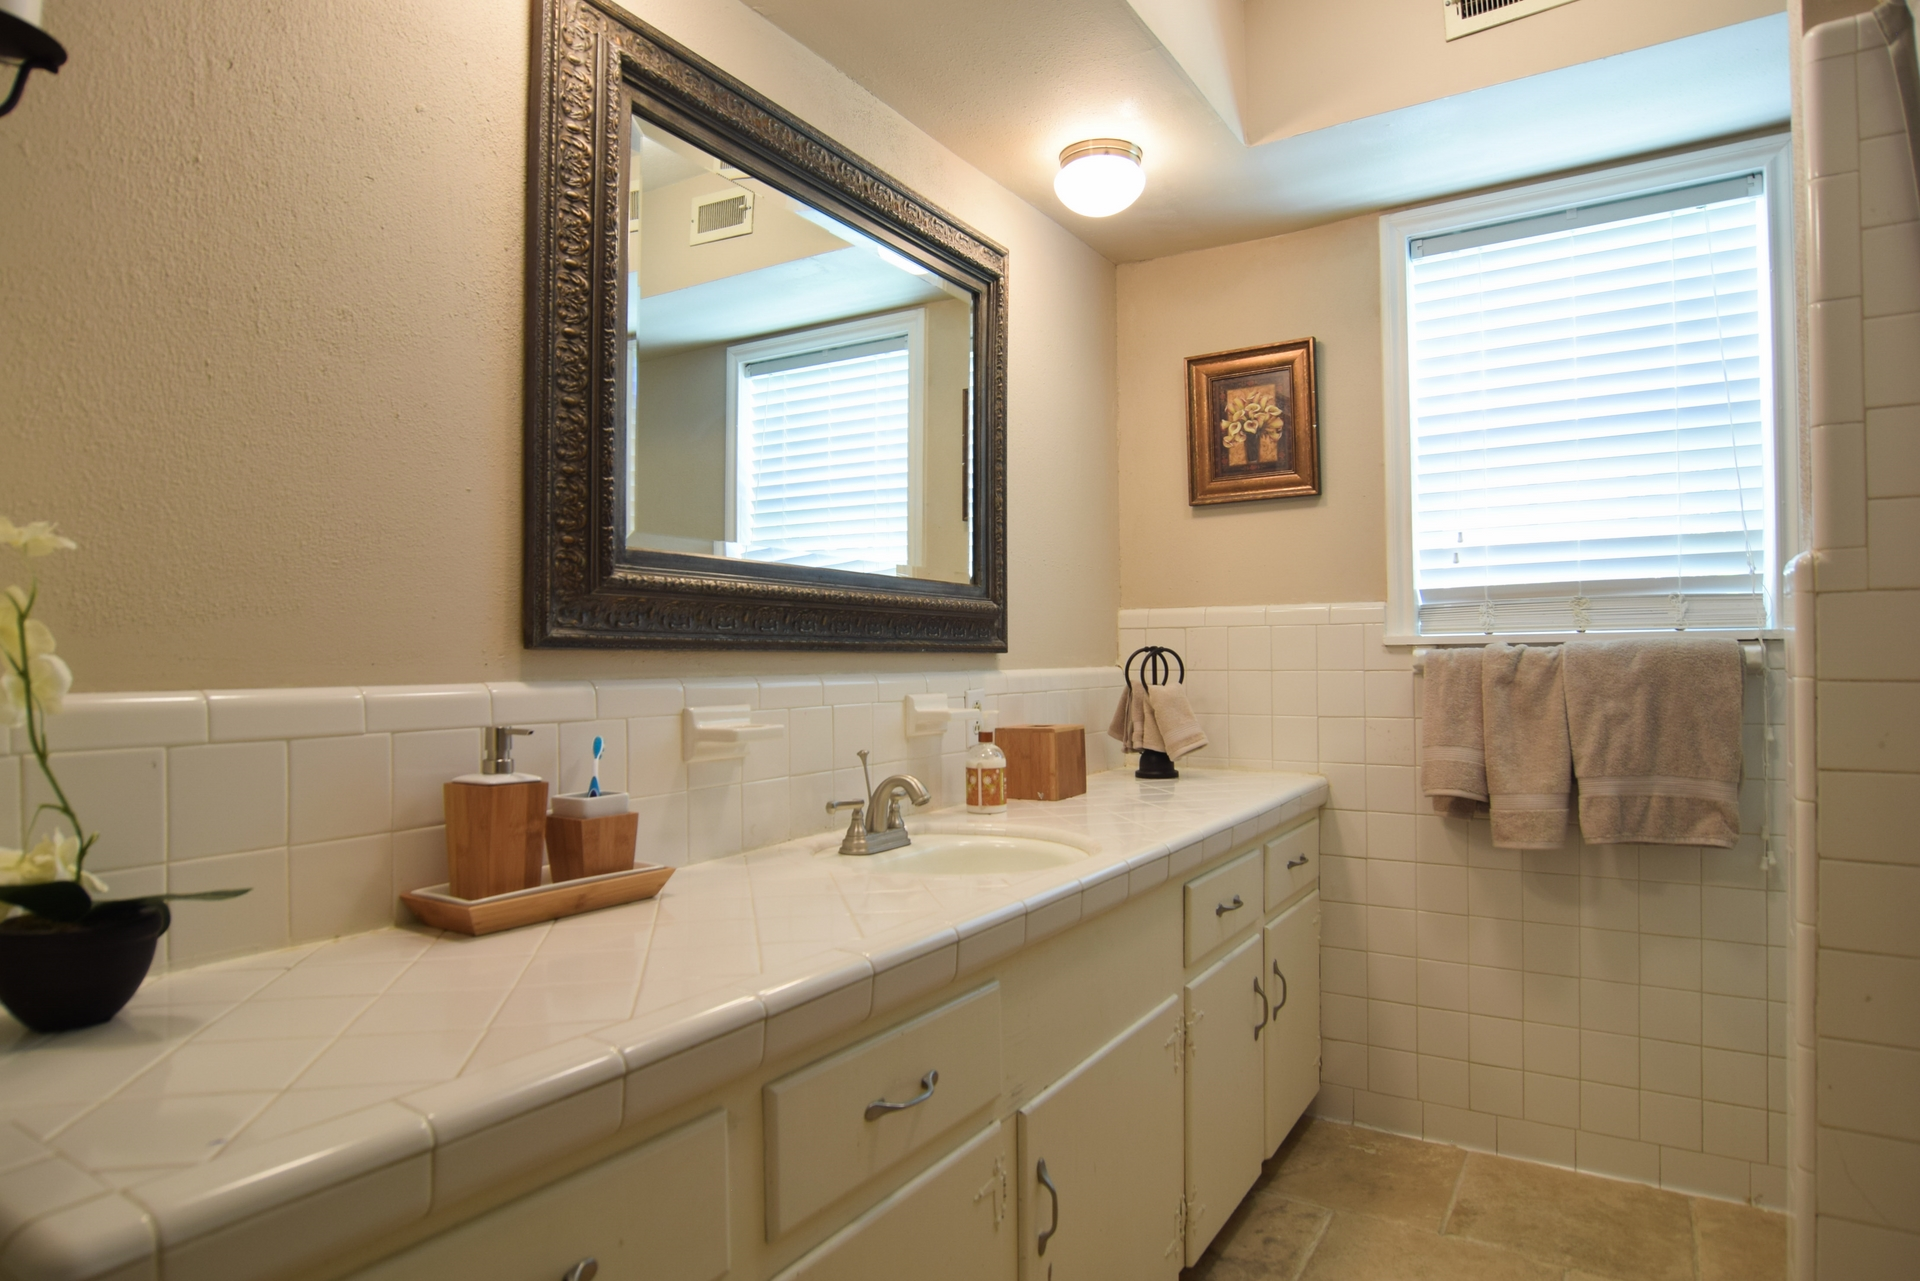 Bath Downstairs 10020 Harwich Dallas TX 75229.jpg